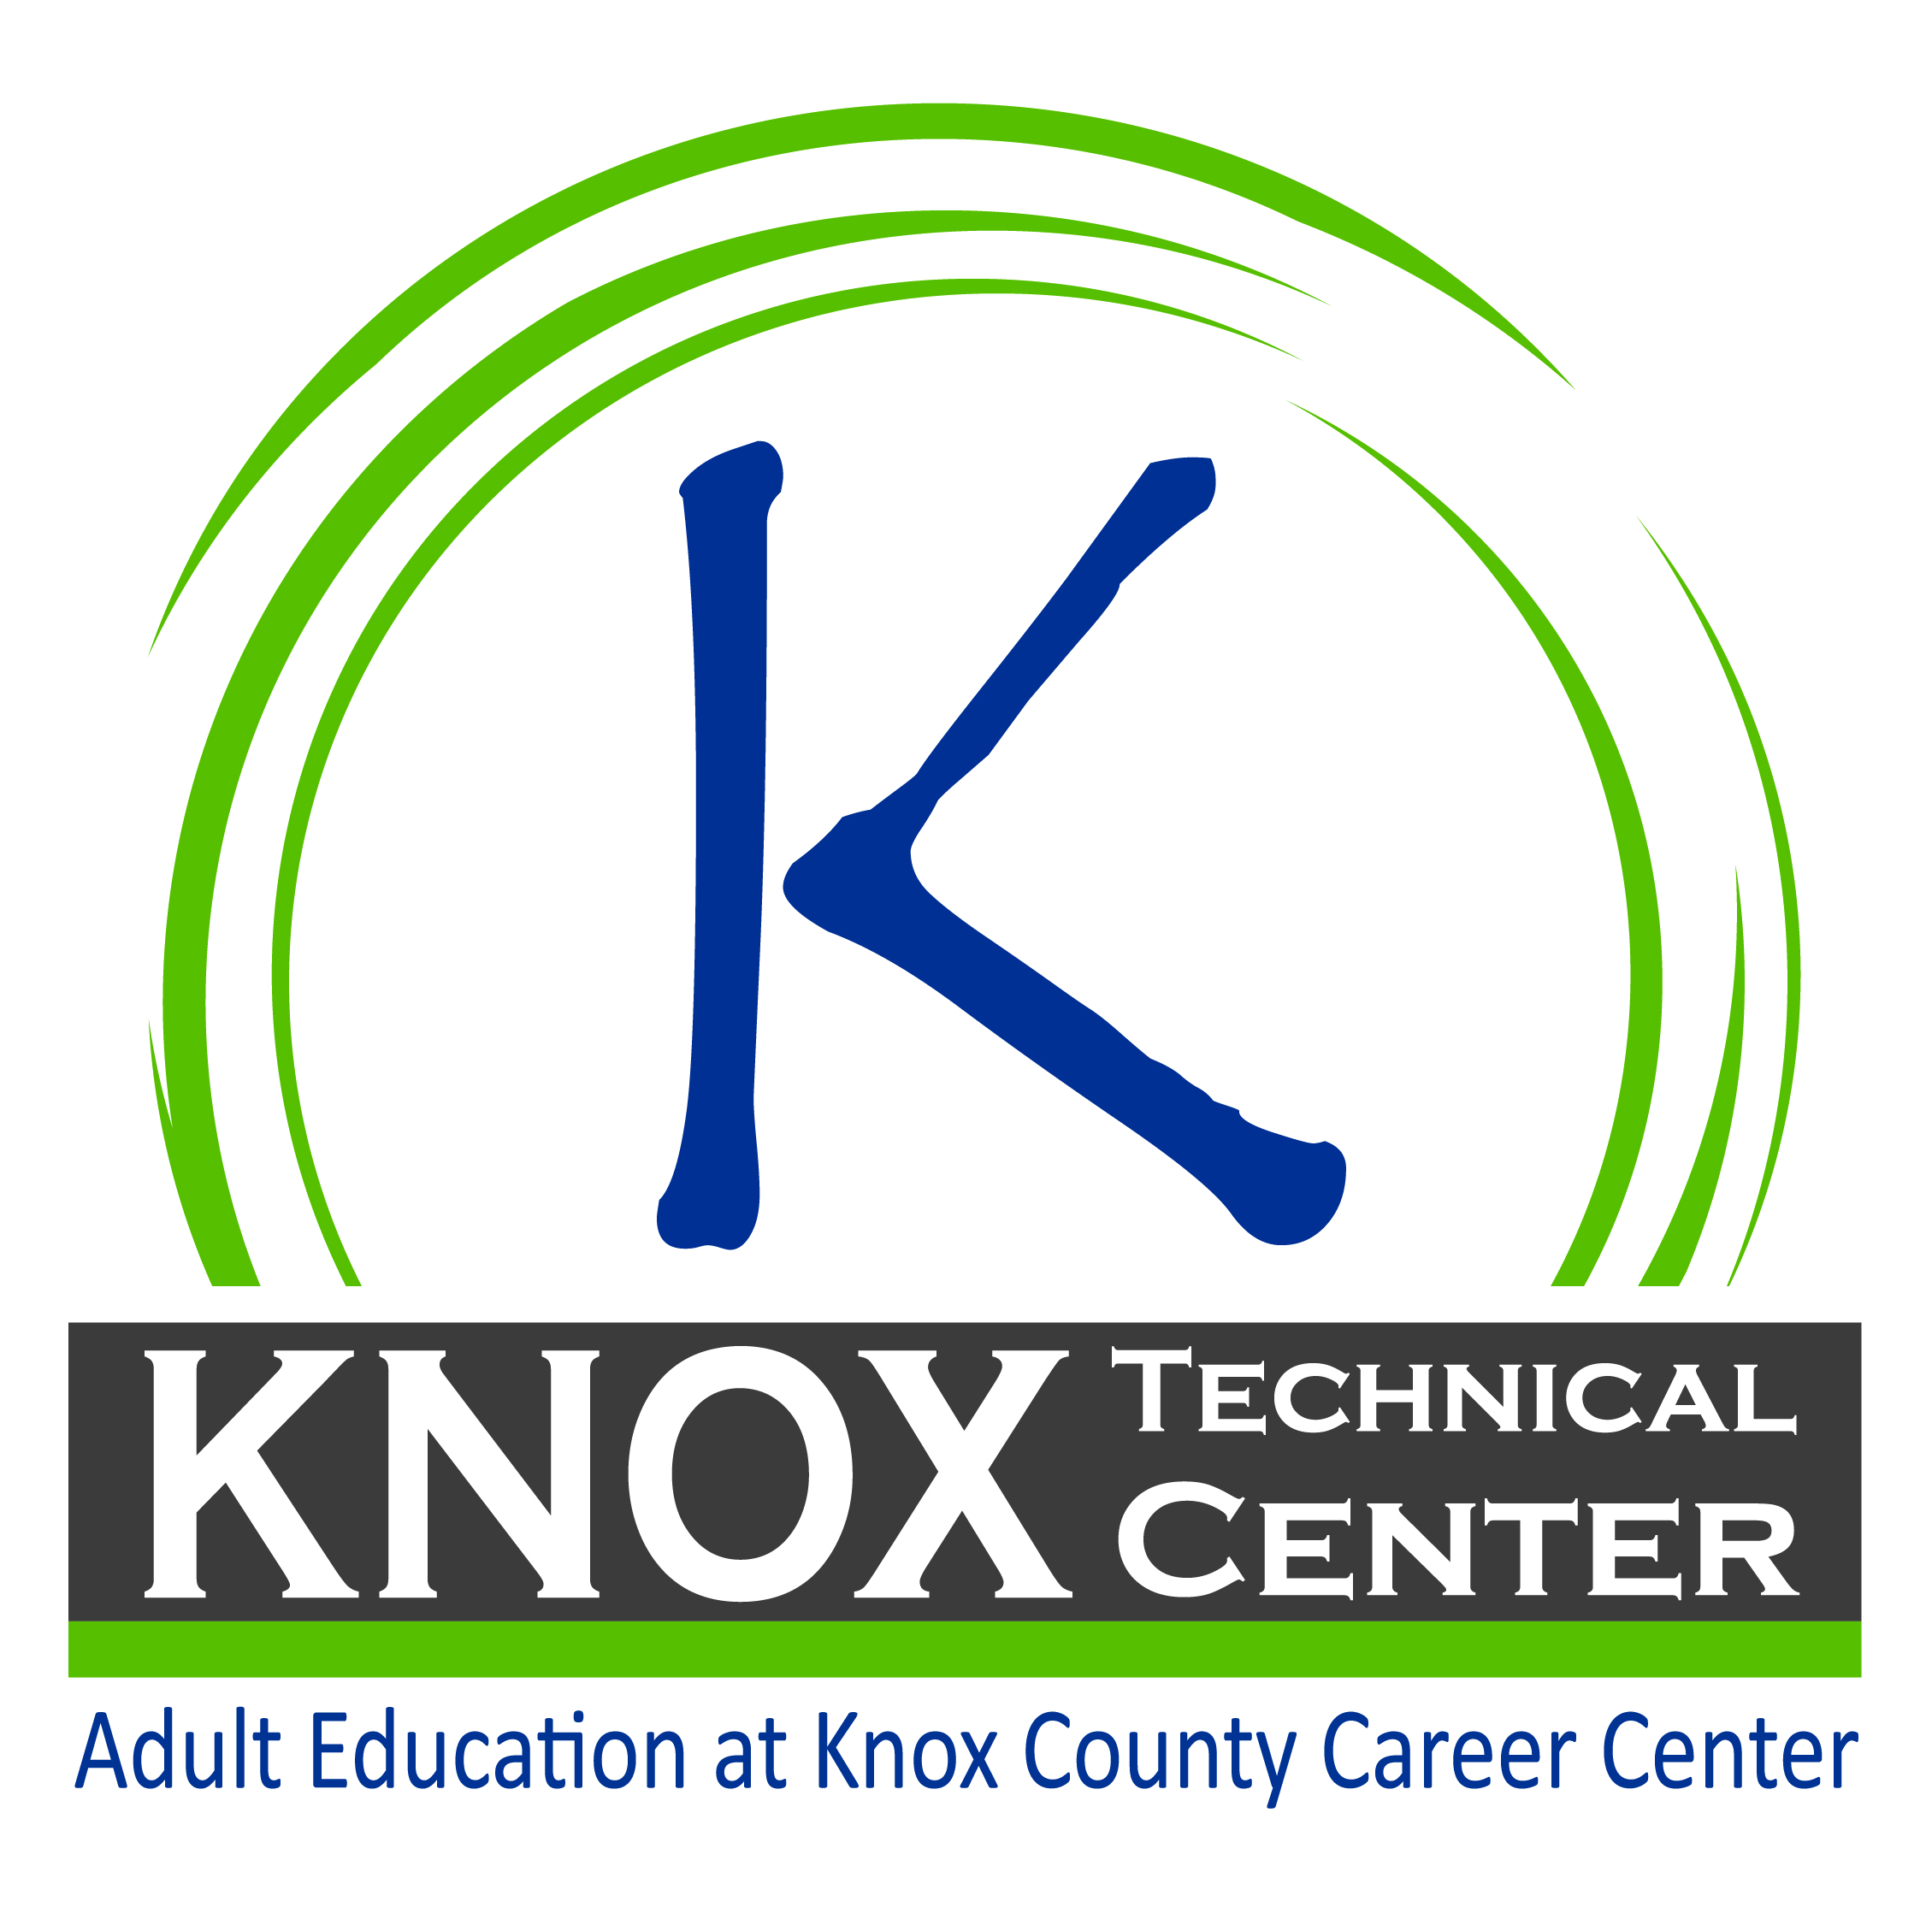 Knox Technical Center